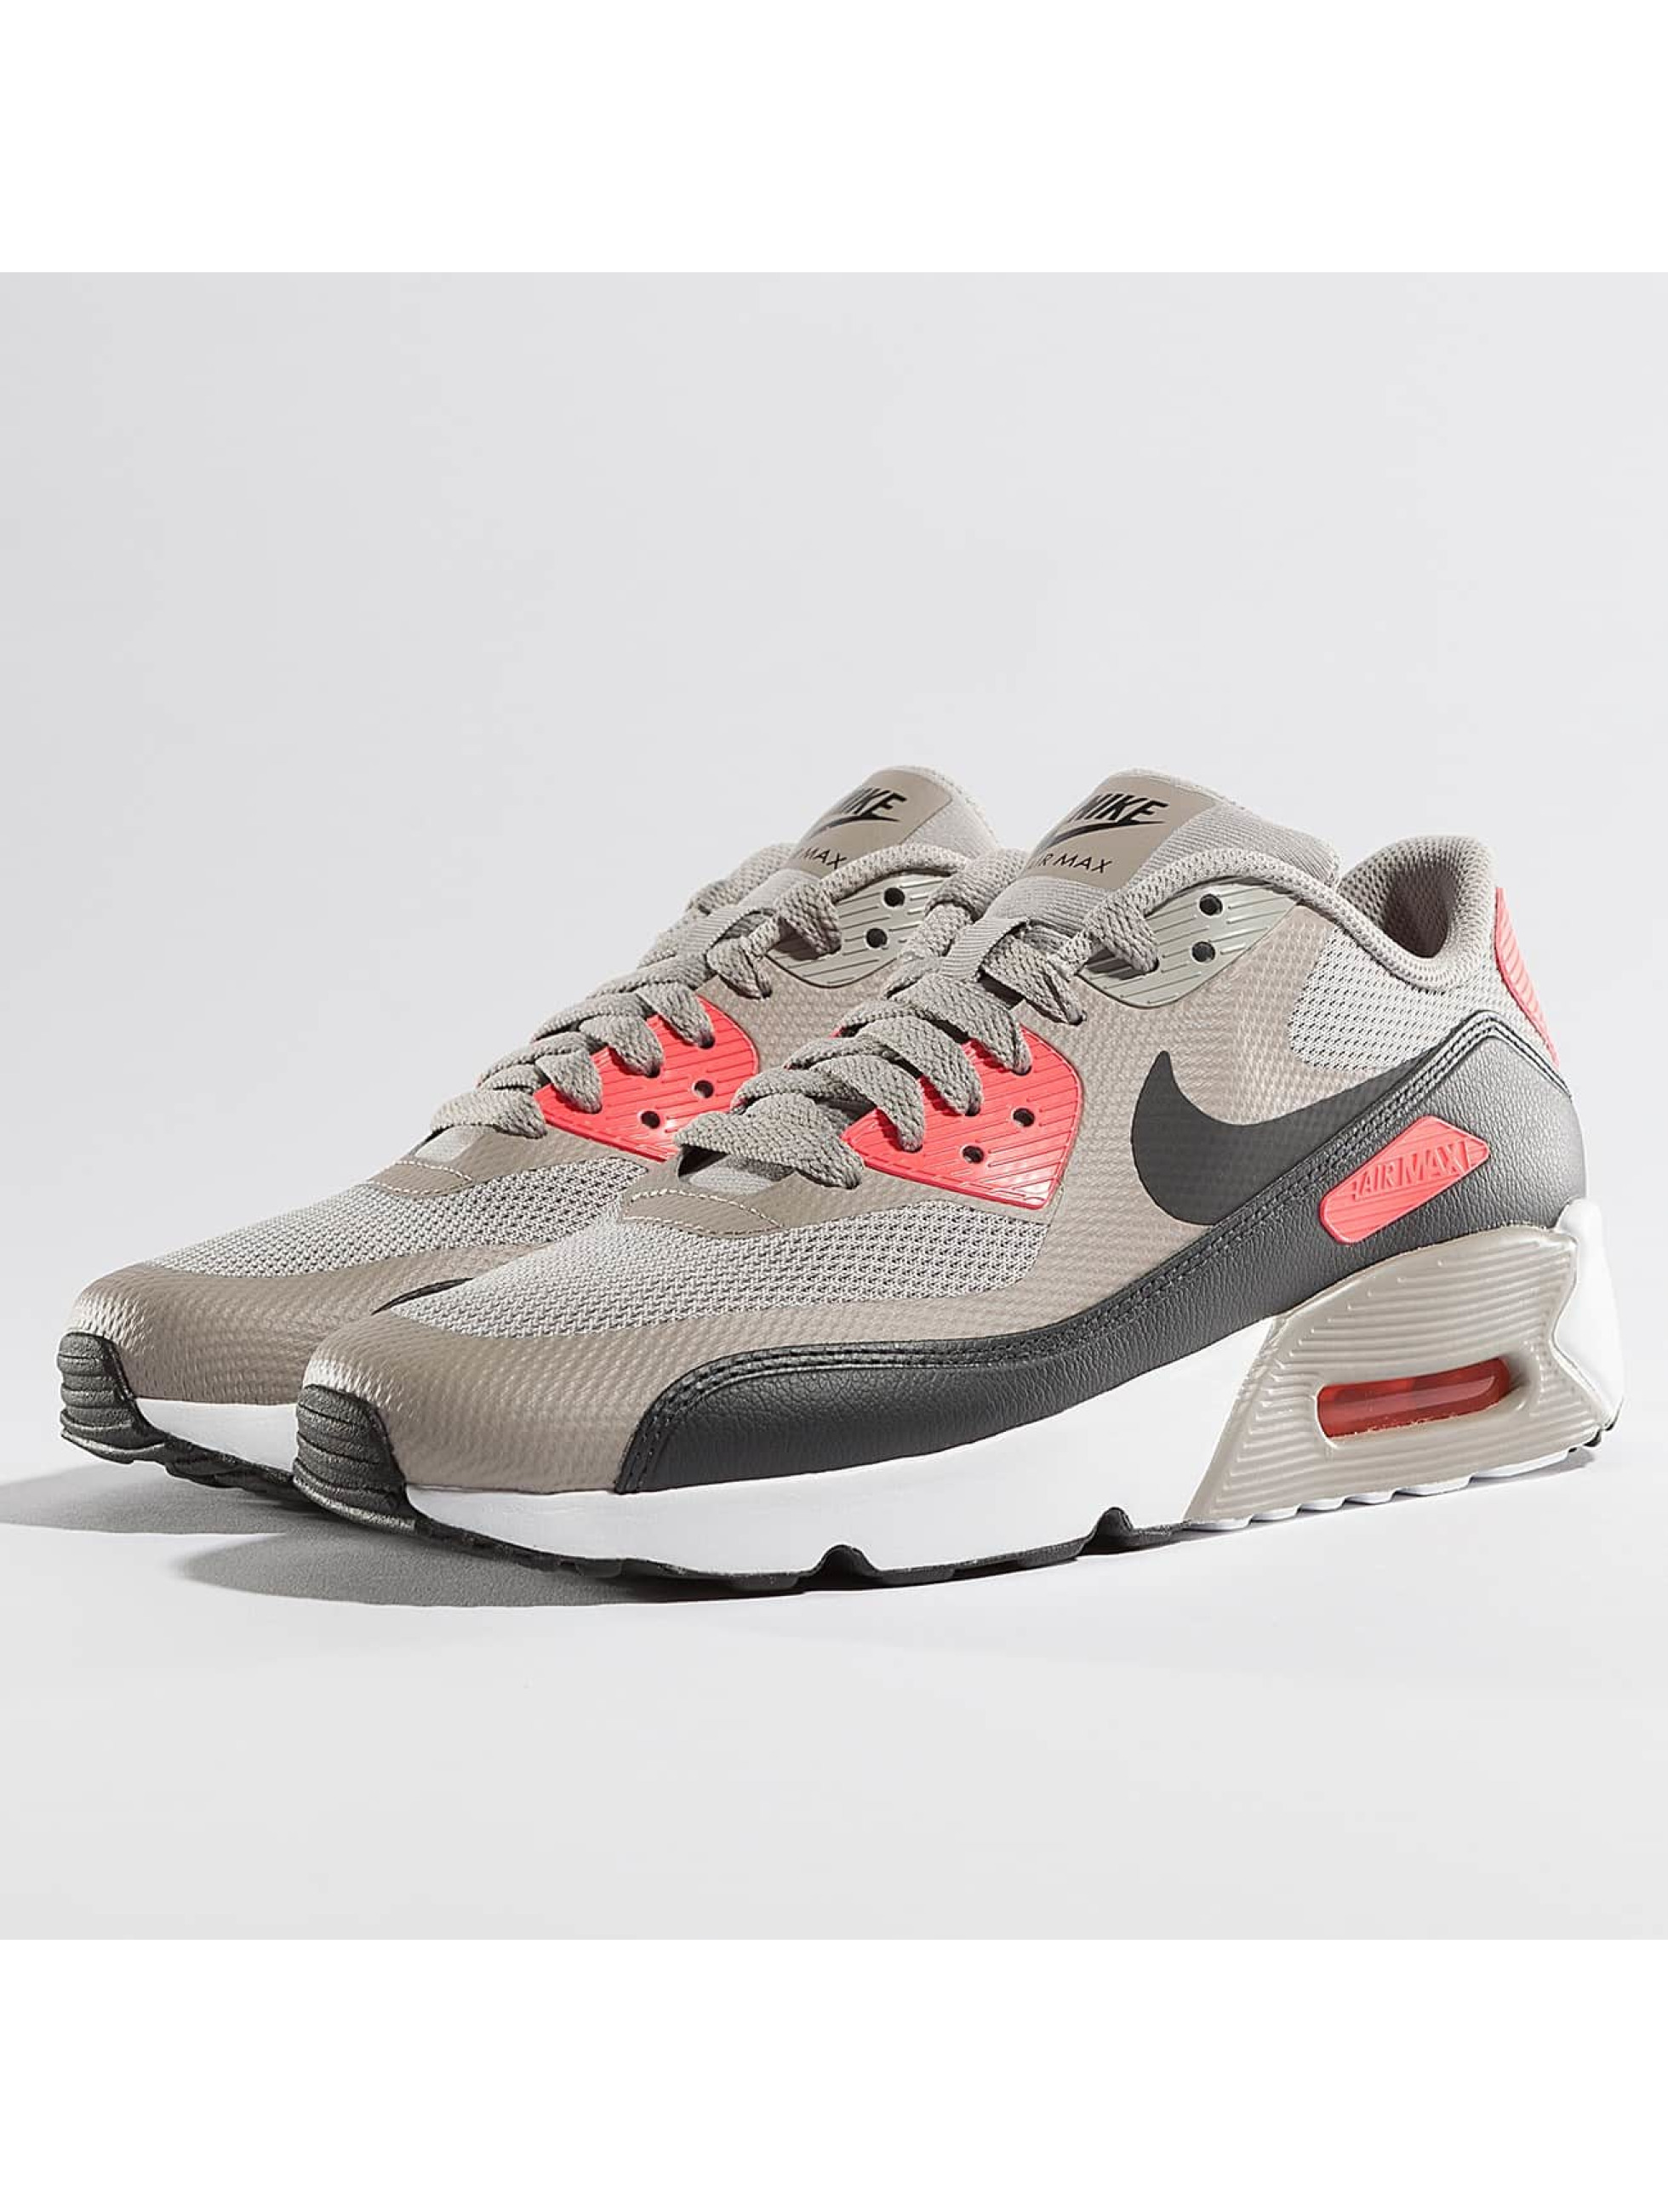 Nike Frauen,Kinder Sneaker Air Max 90 Ultra 2.0 (GS) in grau